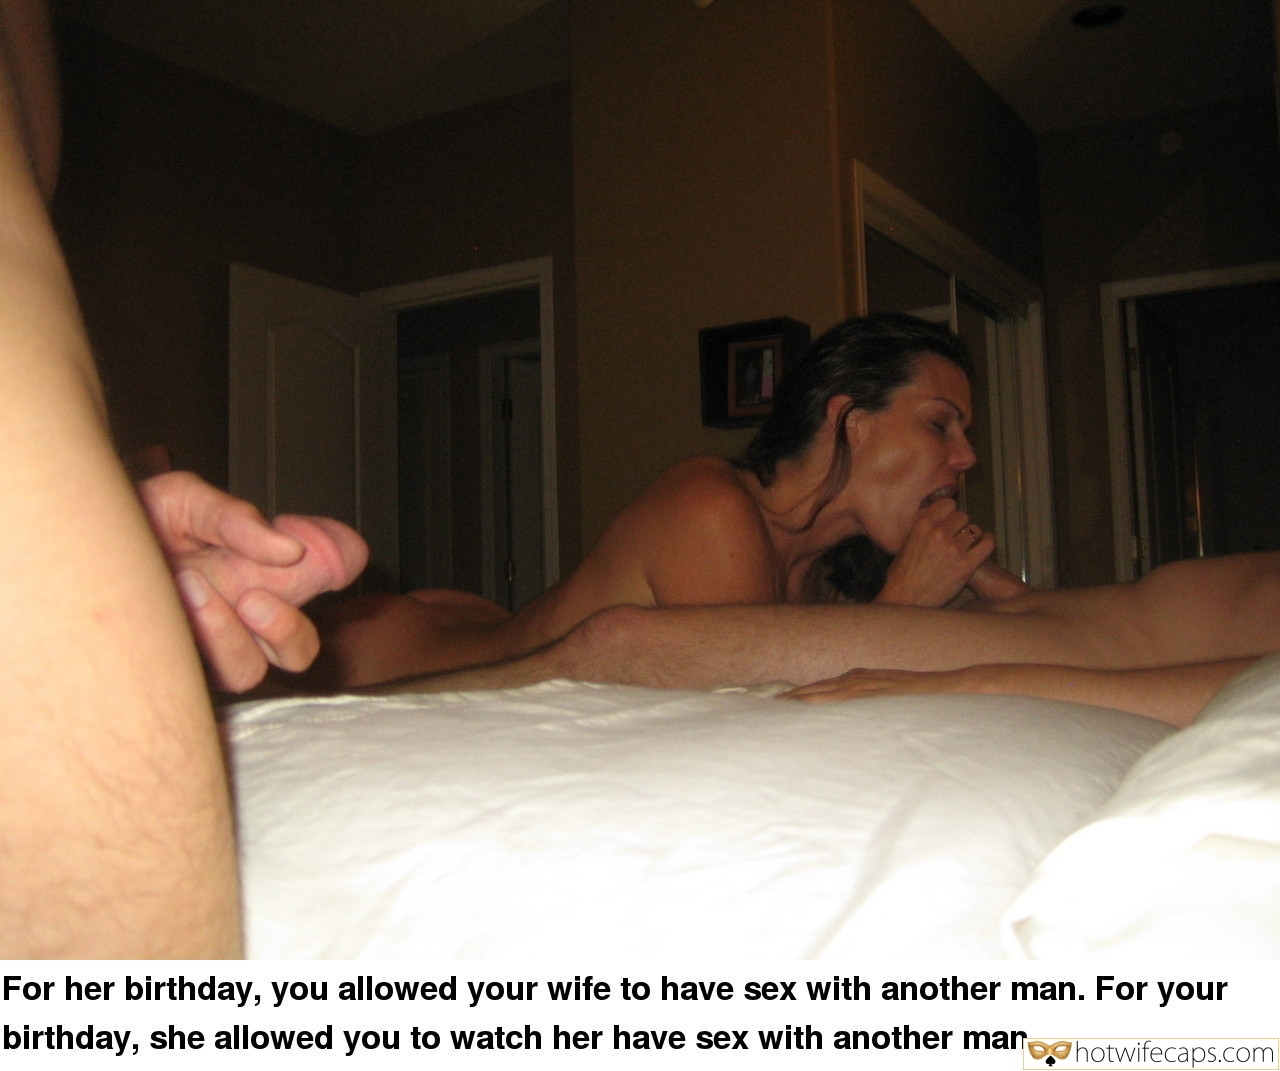 Wife Sharing Masturbation Blowjob hotwife caption: For her birthday, you allowed your wife to have sex with another man. For your birthday, she allowed you to watch her have sex with another man. Wife Deepthroats Stranger While Husband Jerking